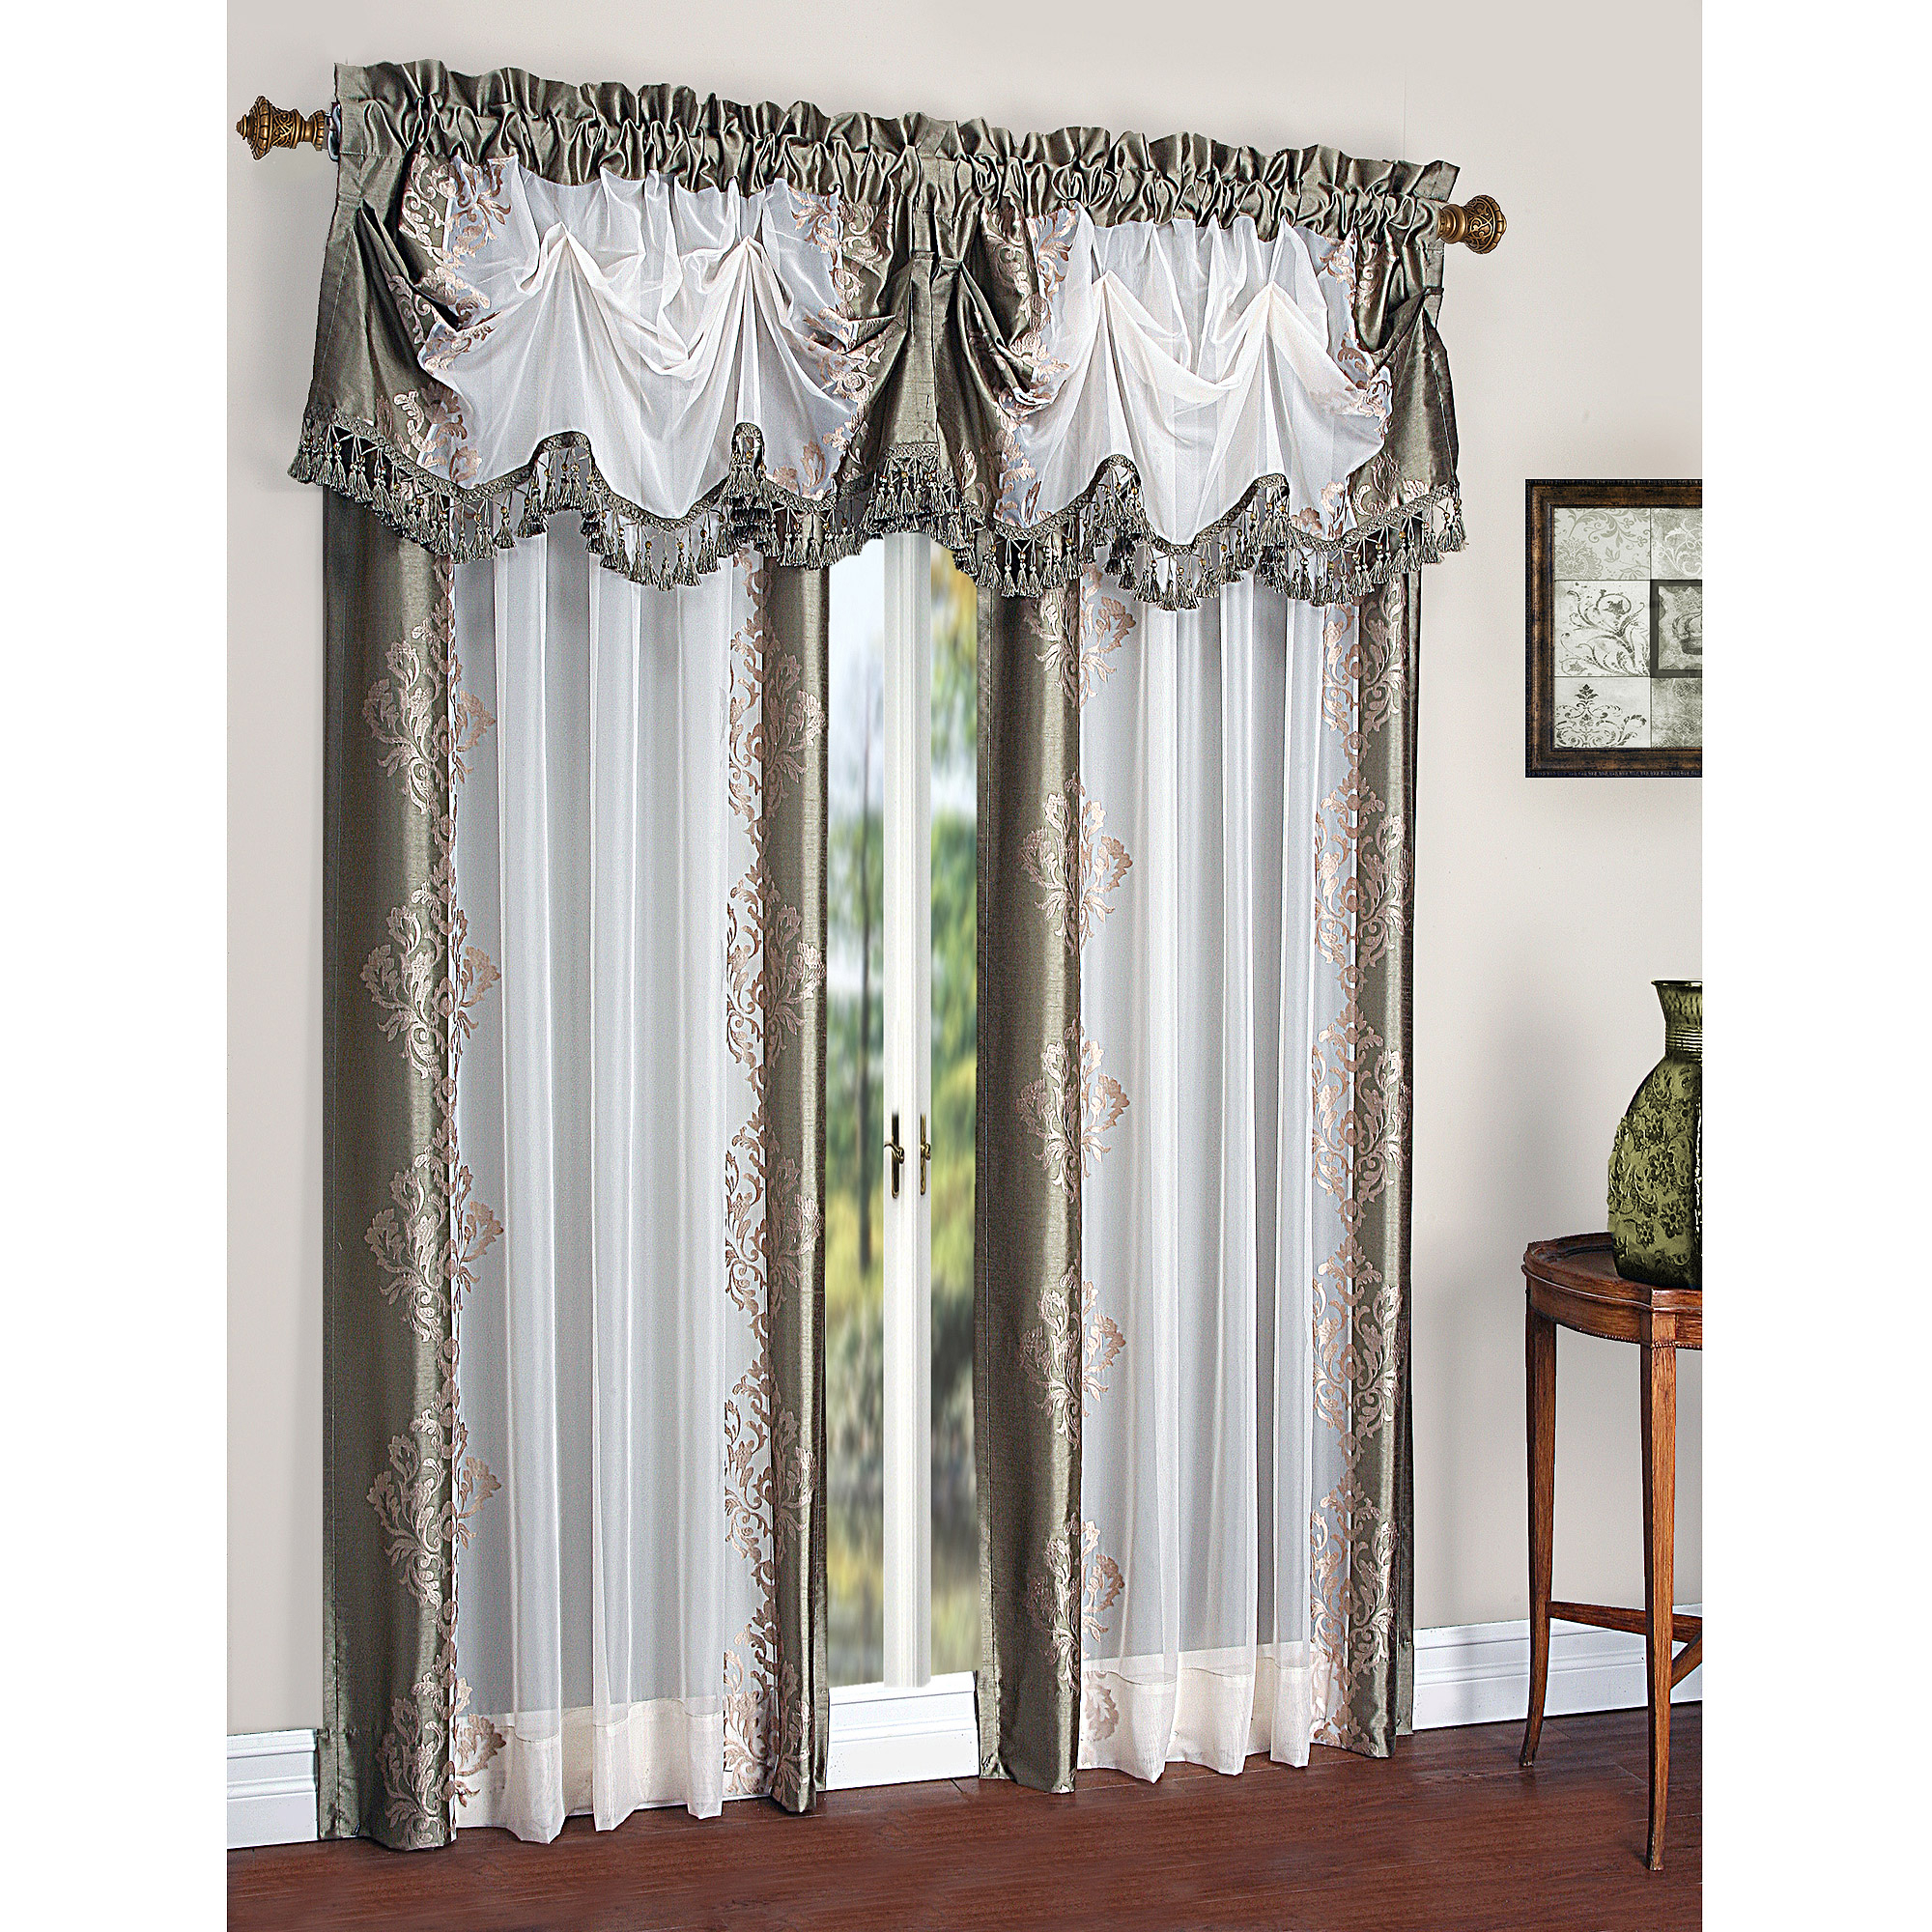 Recent Ofloral Embroidered Faux Silk Window Curtain Panels In Danbury Embroidered Pieced Voile Faux Silk Polyester Curtain Panel (View 13 of 20)